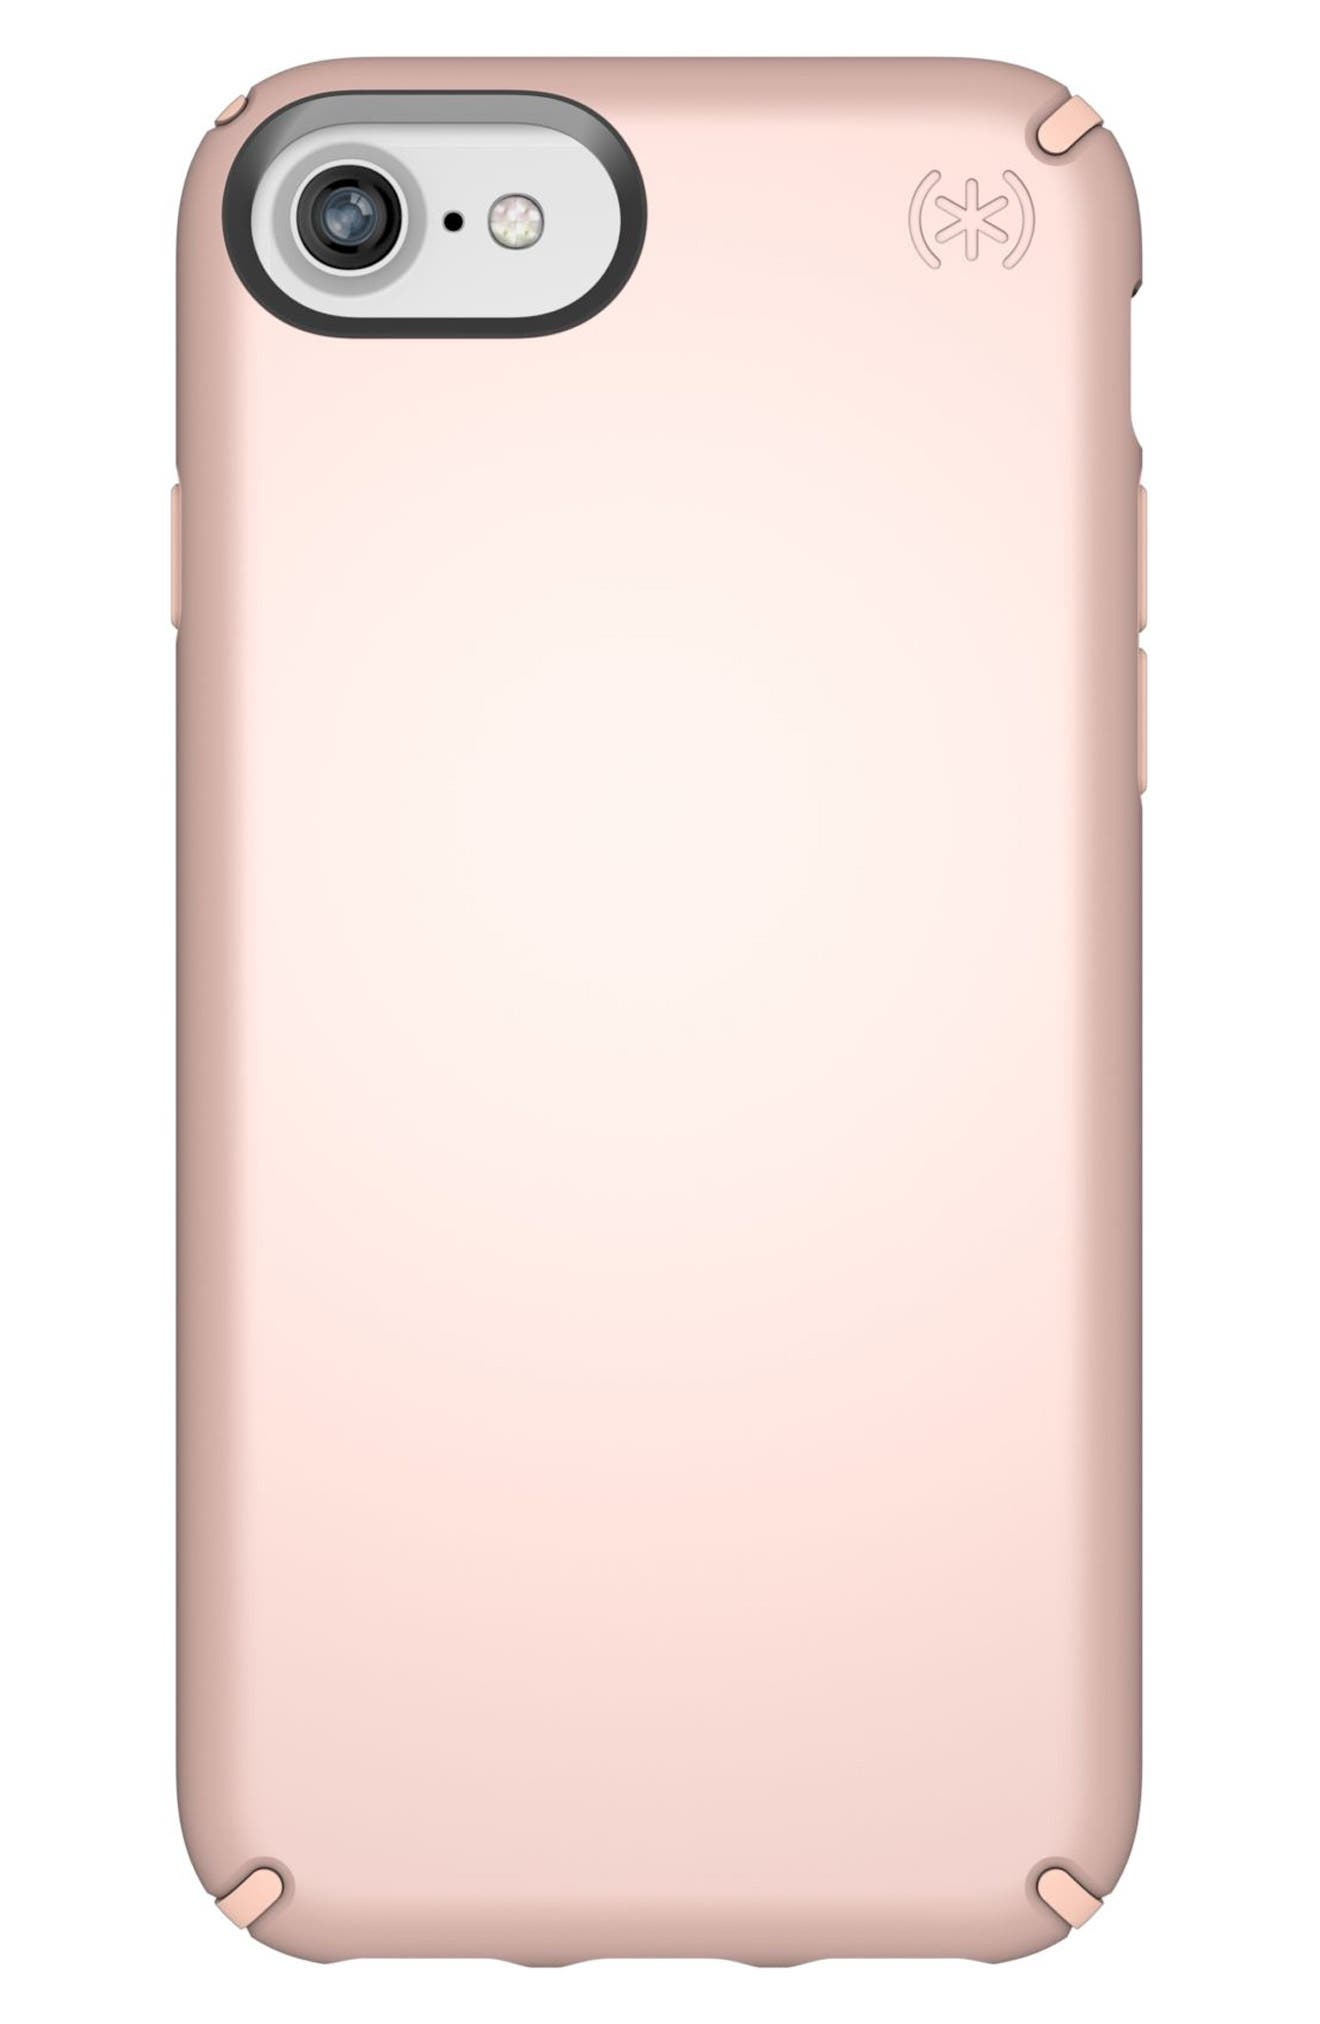 iPhone 6/6s/7/8 Case,                         Main,                         color, Rose Gold Metallic/ Peach